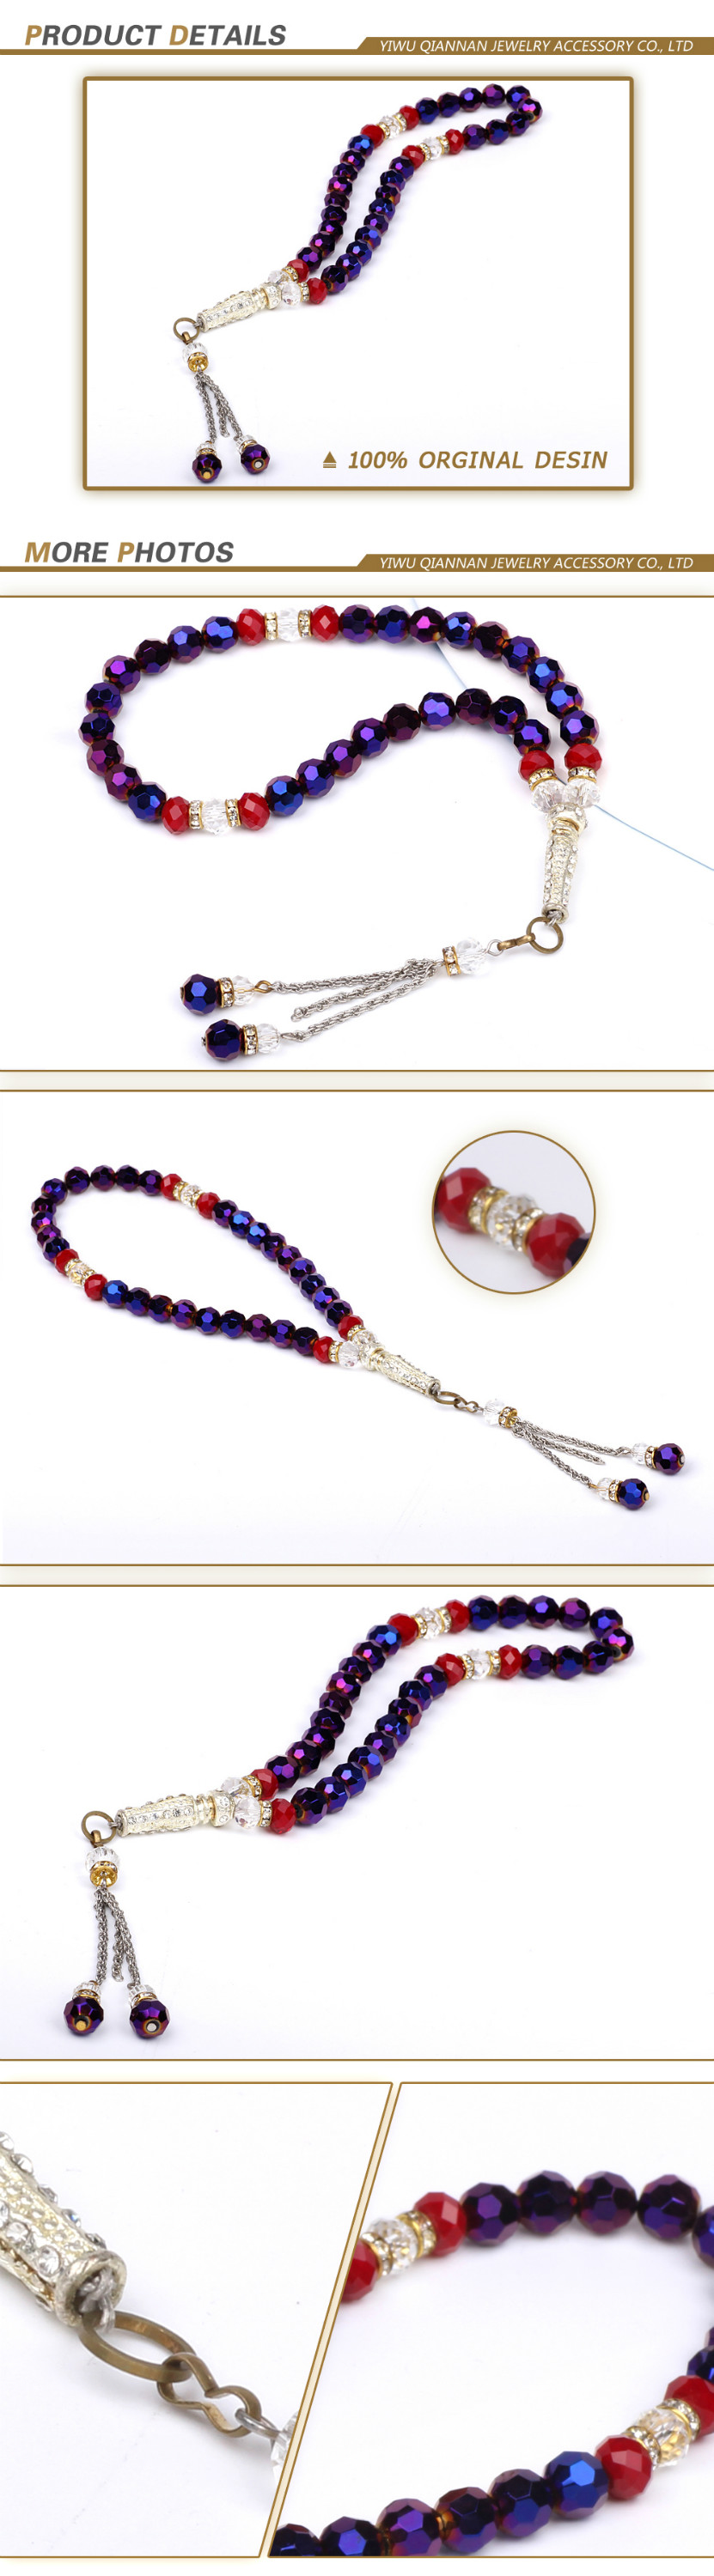 Wholesale cheap solid color round glass prayer beads beads unlimited discount code boncuk tesbih modelleri